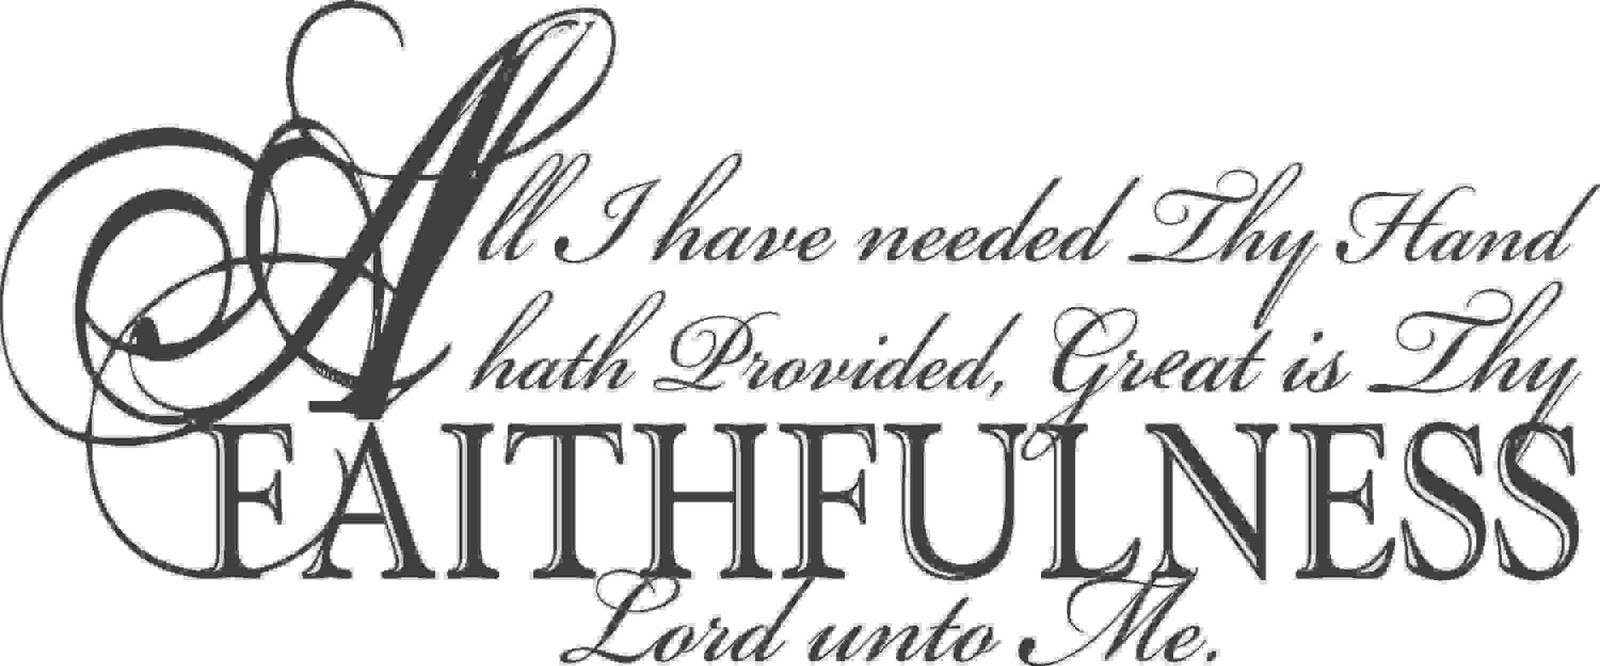 Touch of Beauty Designs: All I hath needed Thy Hand hath